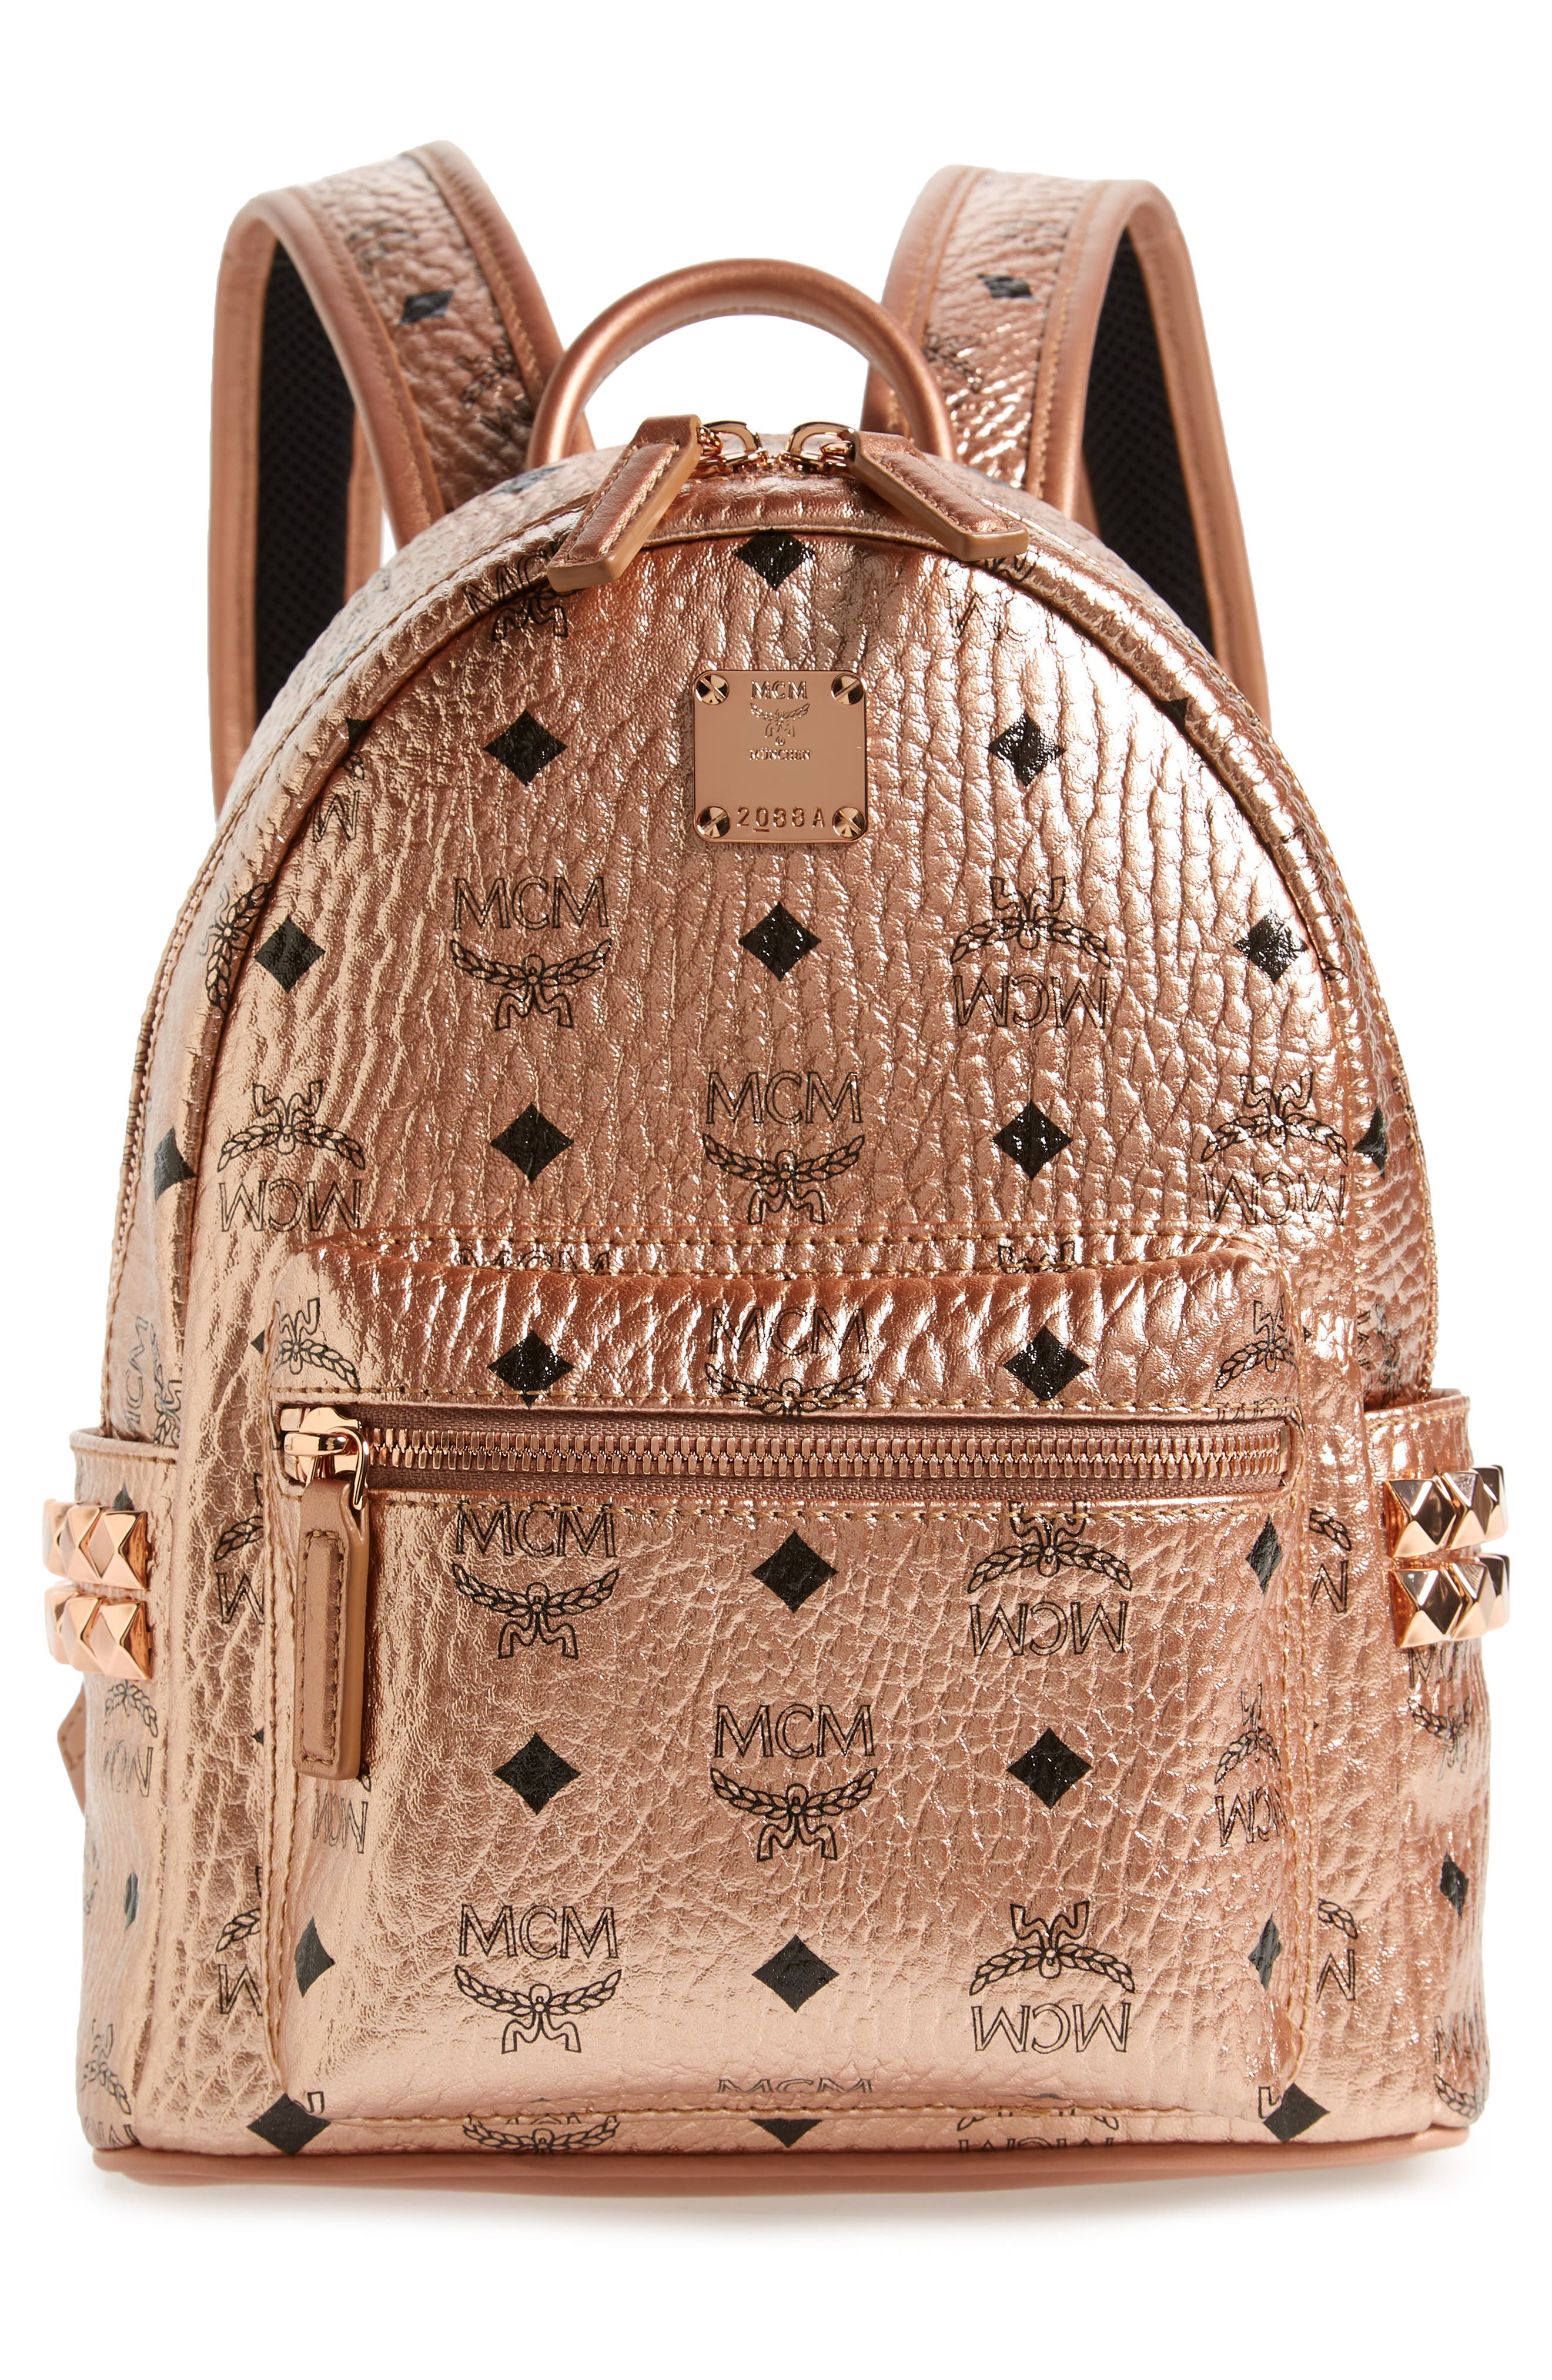 9a99a150efd70 MCM Women s Backpacks Accessories